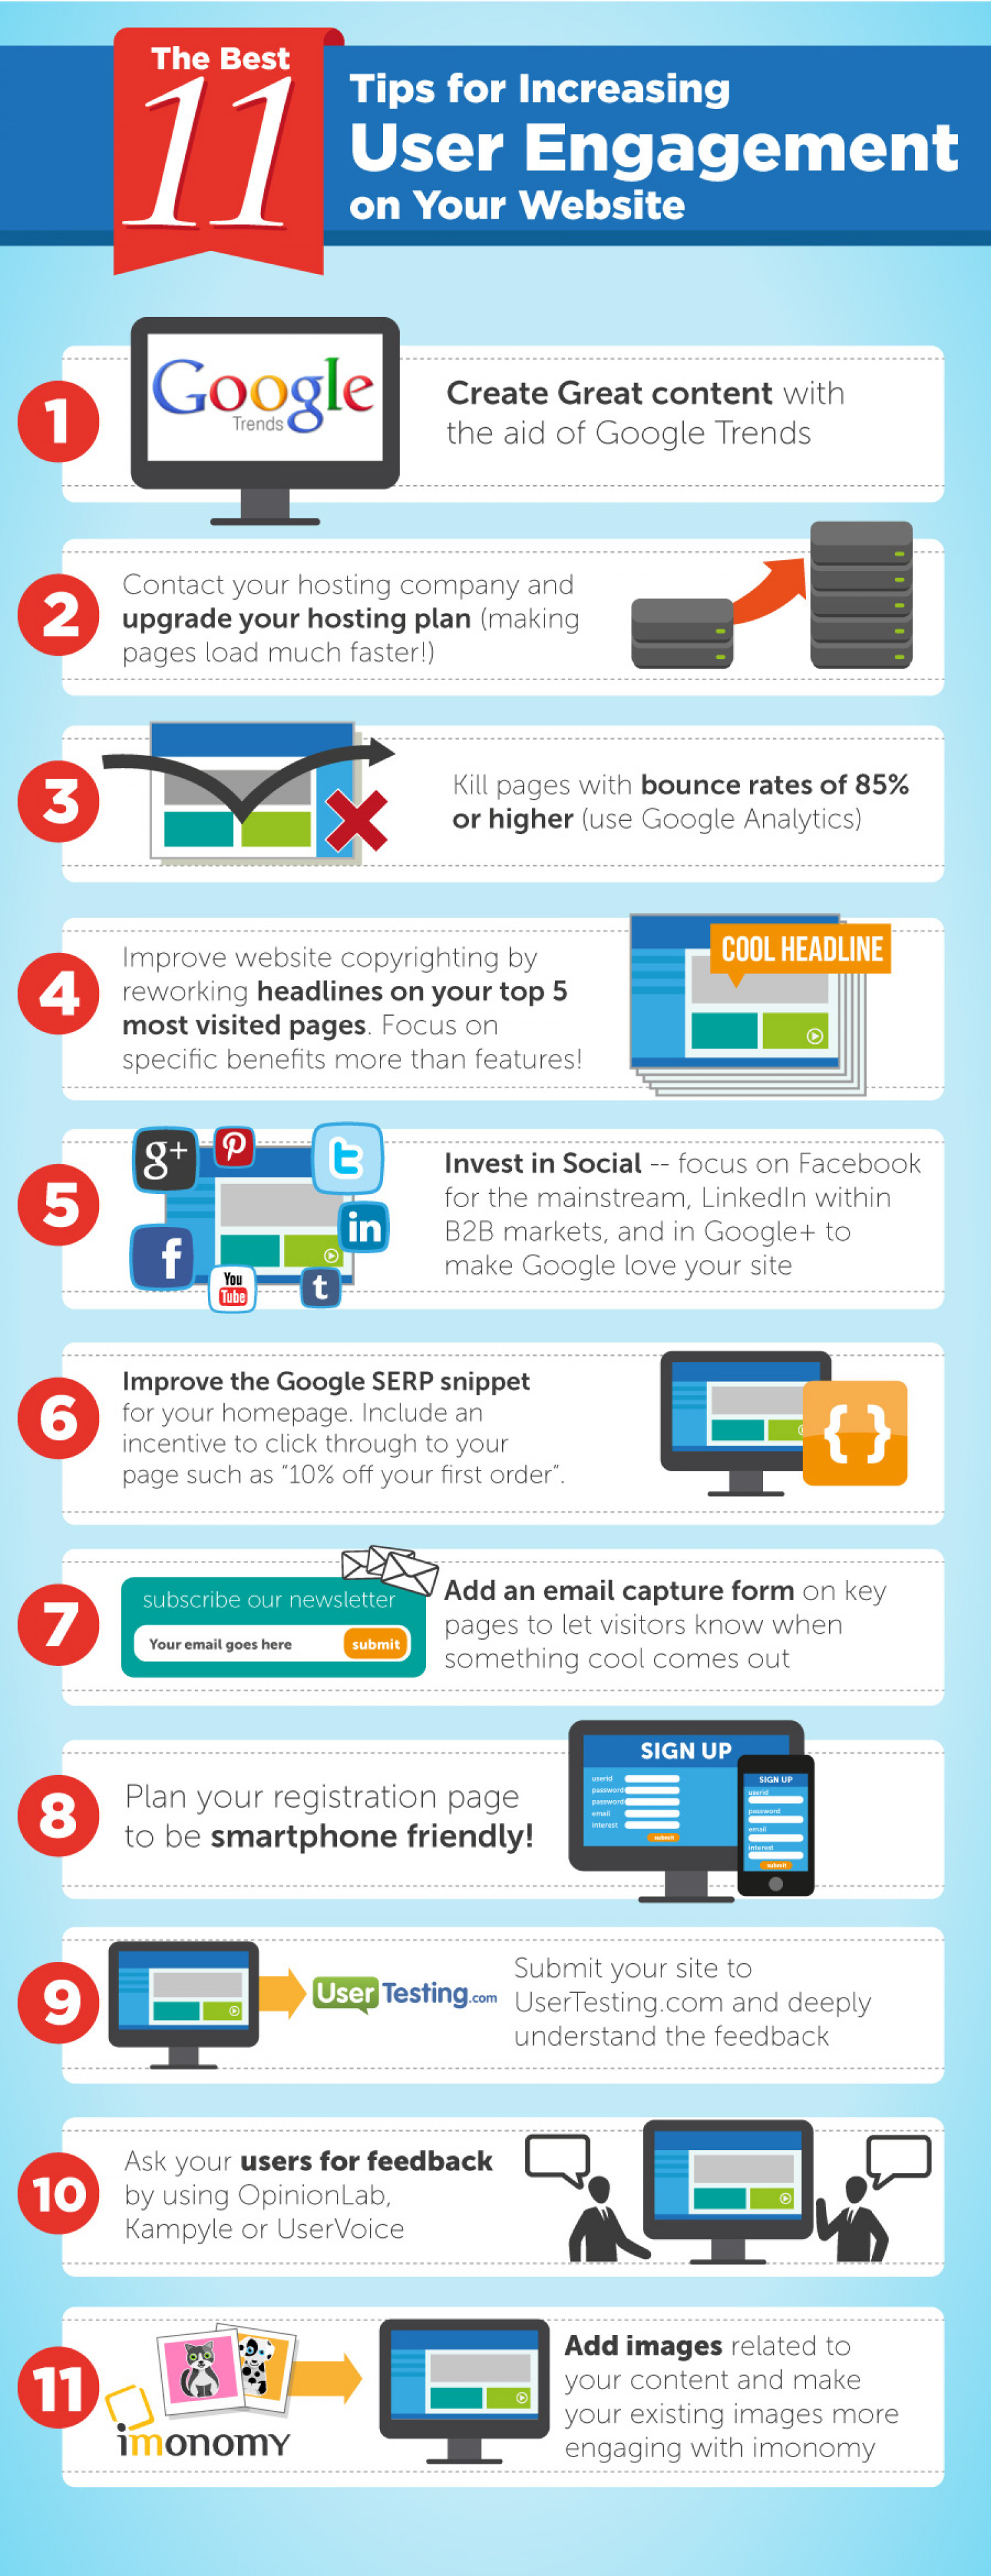 The Best 11 Tips for Increasing User Engagement on Your Website Infographic